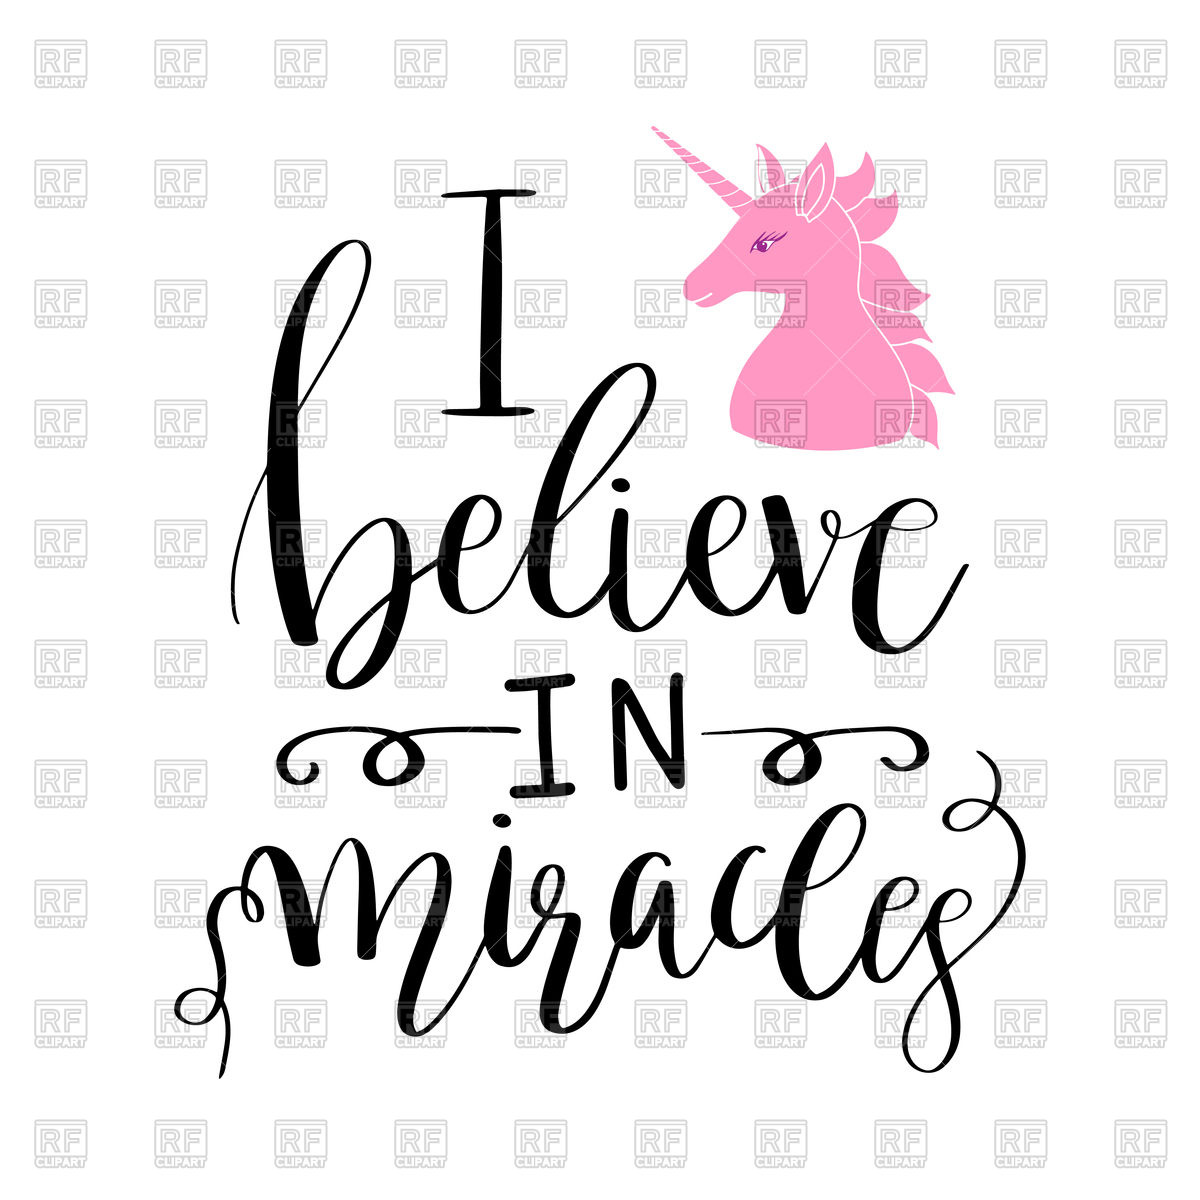 1200x1200 Calligraphic Phrase I Beleive In Miracles And Pink Unicorn Vector